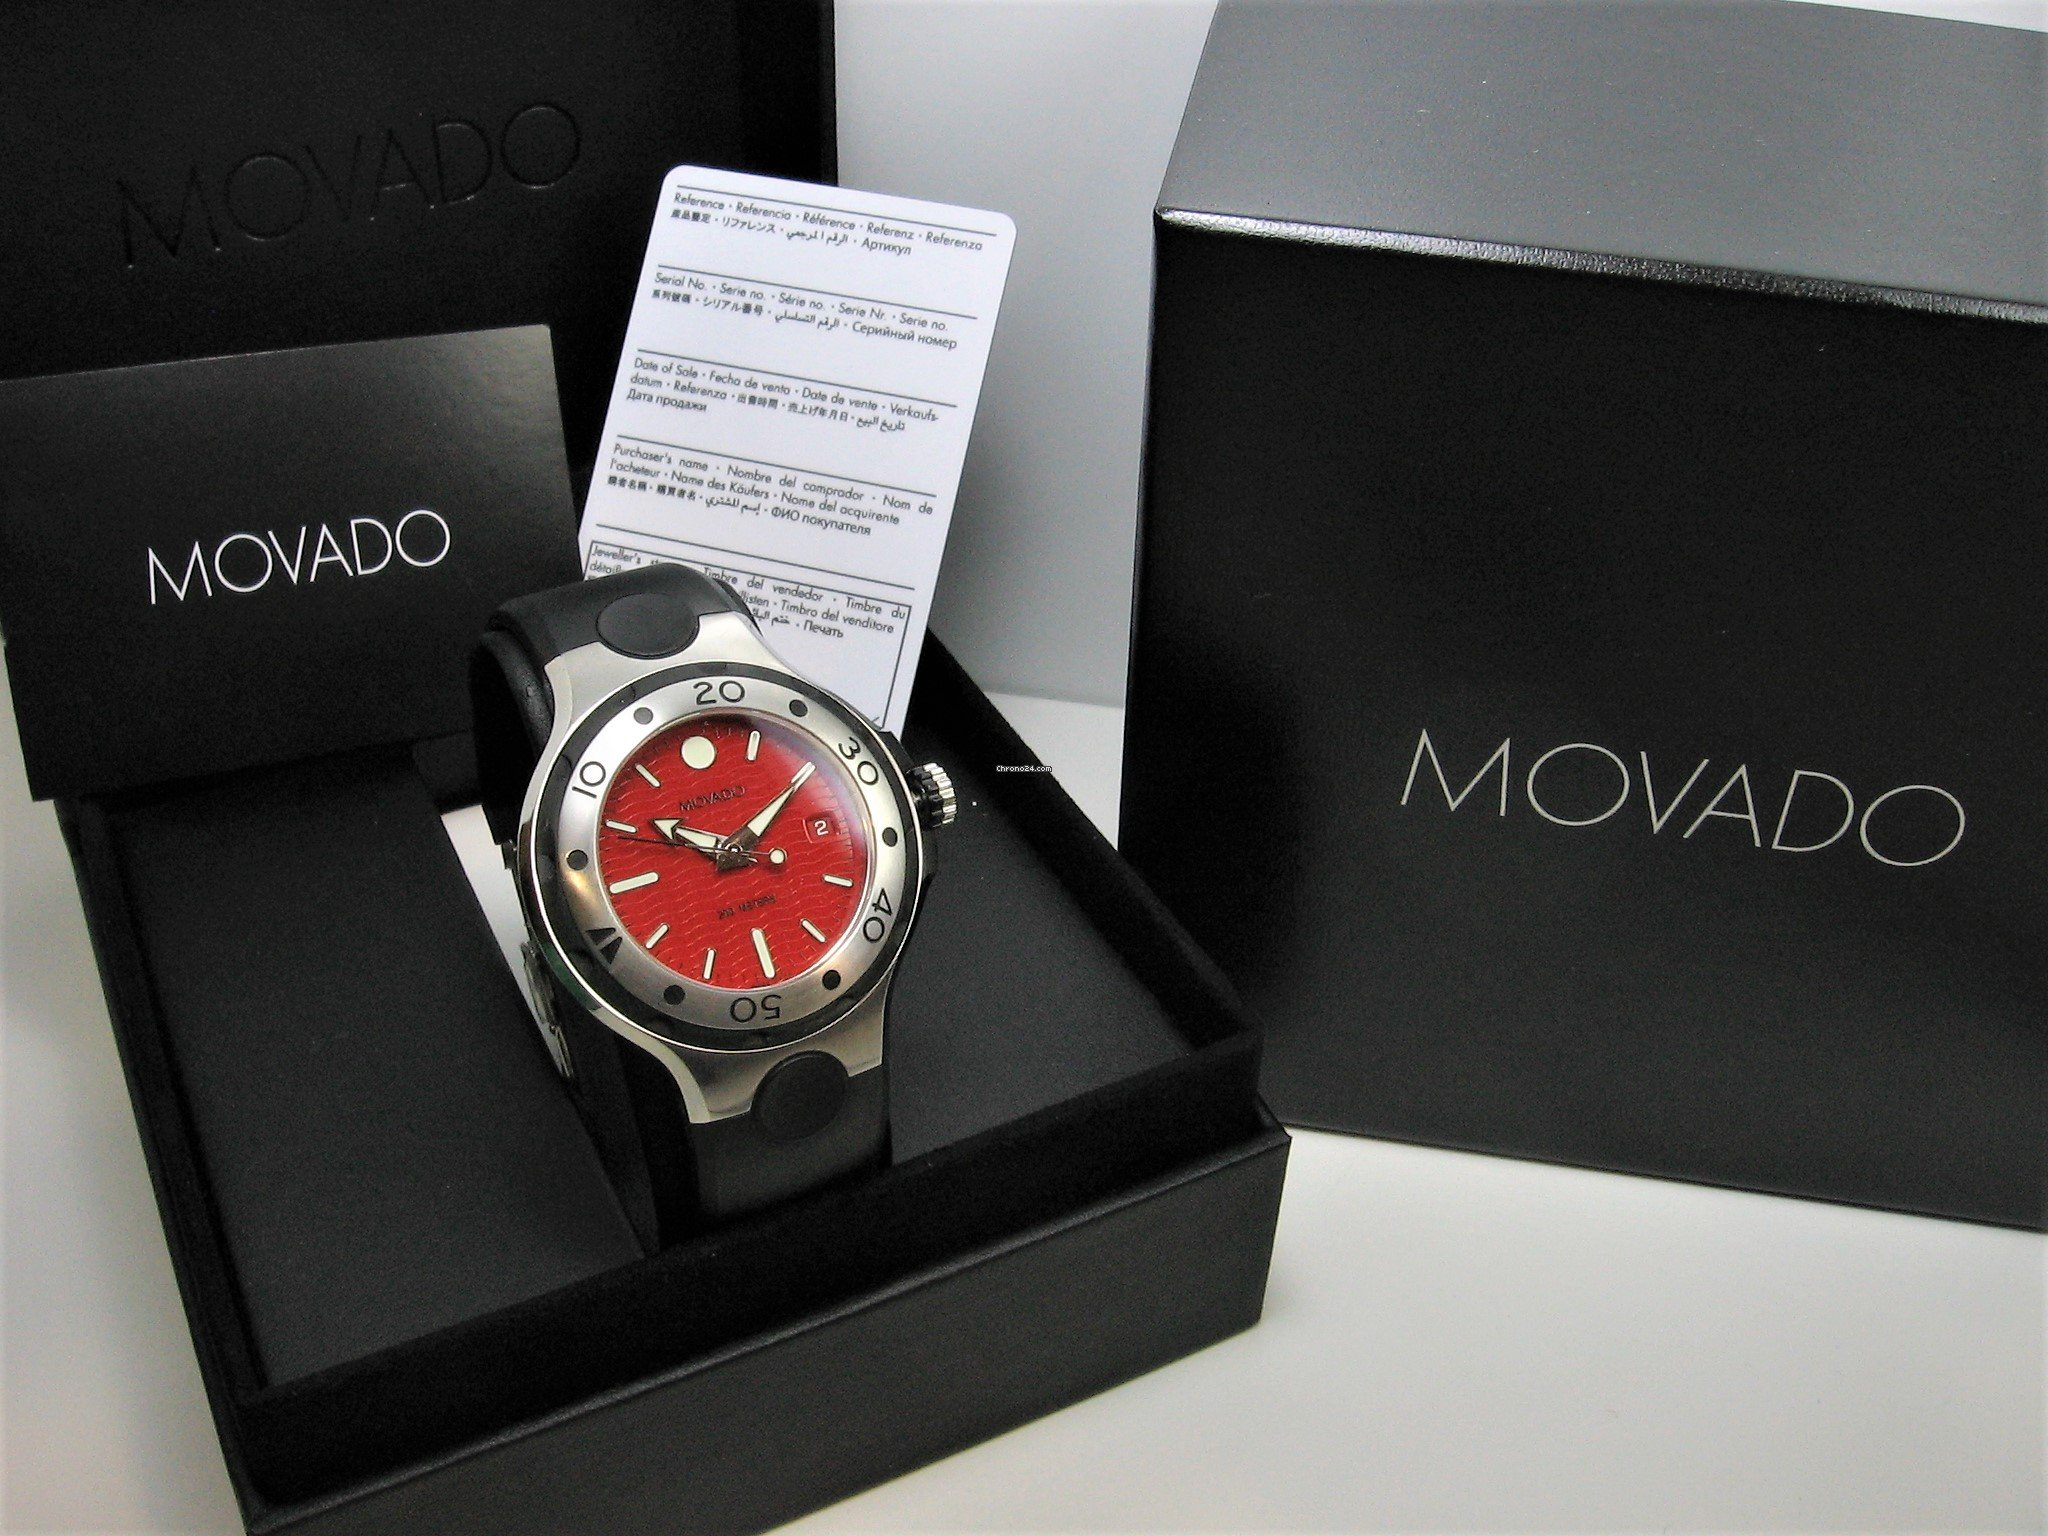 Movado Serie 800 For Rp 10 462 813 For Sale From A Seller On Chrono24